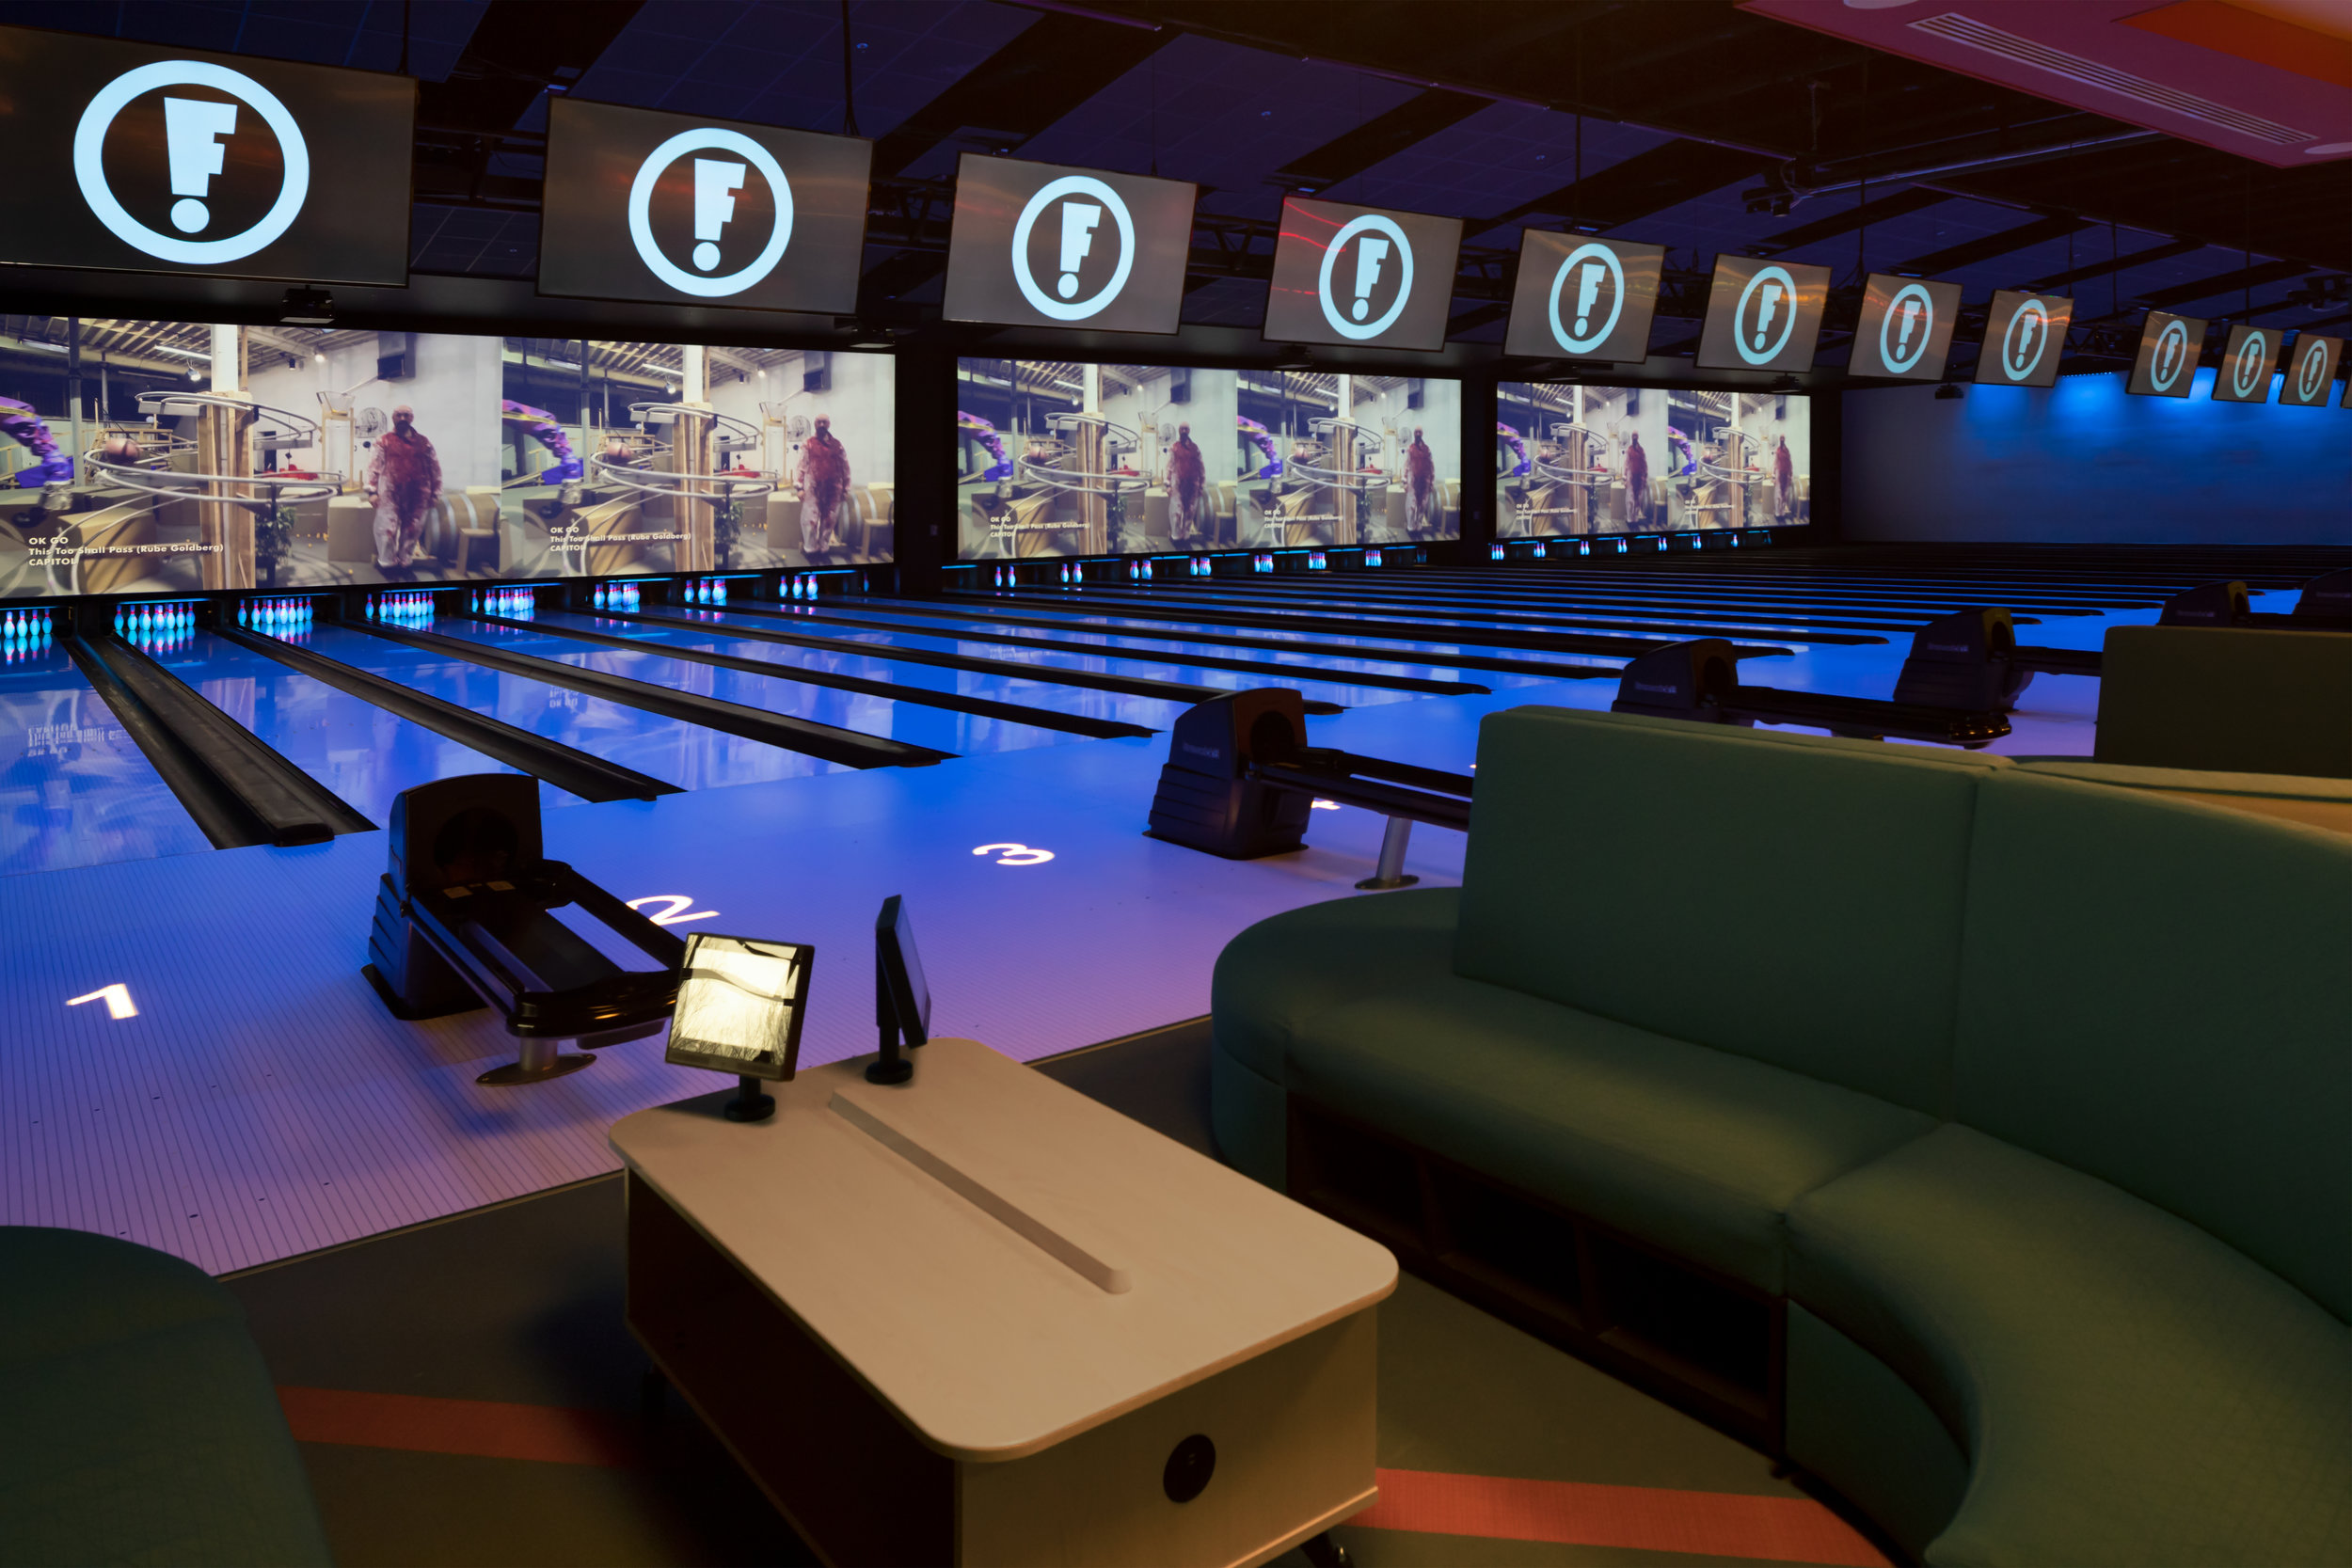 ADW-Entertainment-Frankie's-Fun-Park-Huntersville-NC-Interior-Bowling Lanes 02.jpg